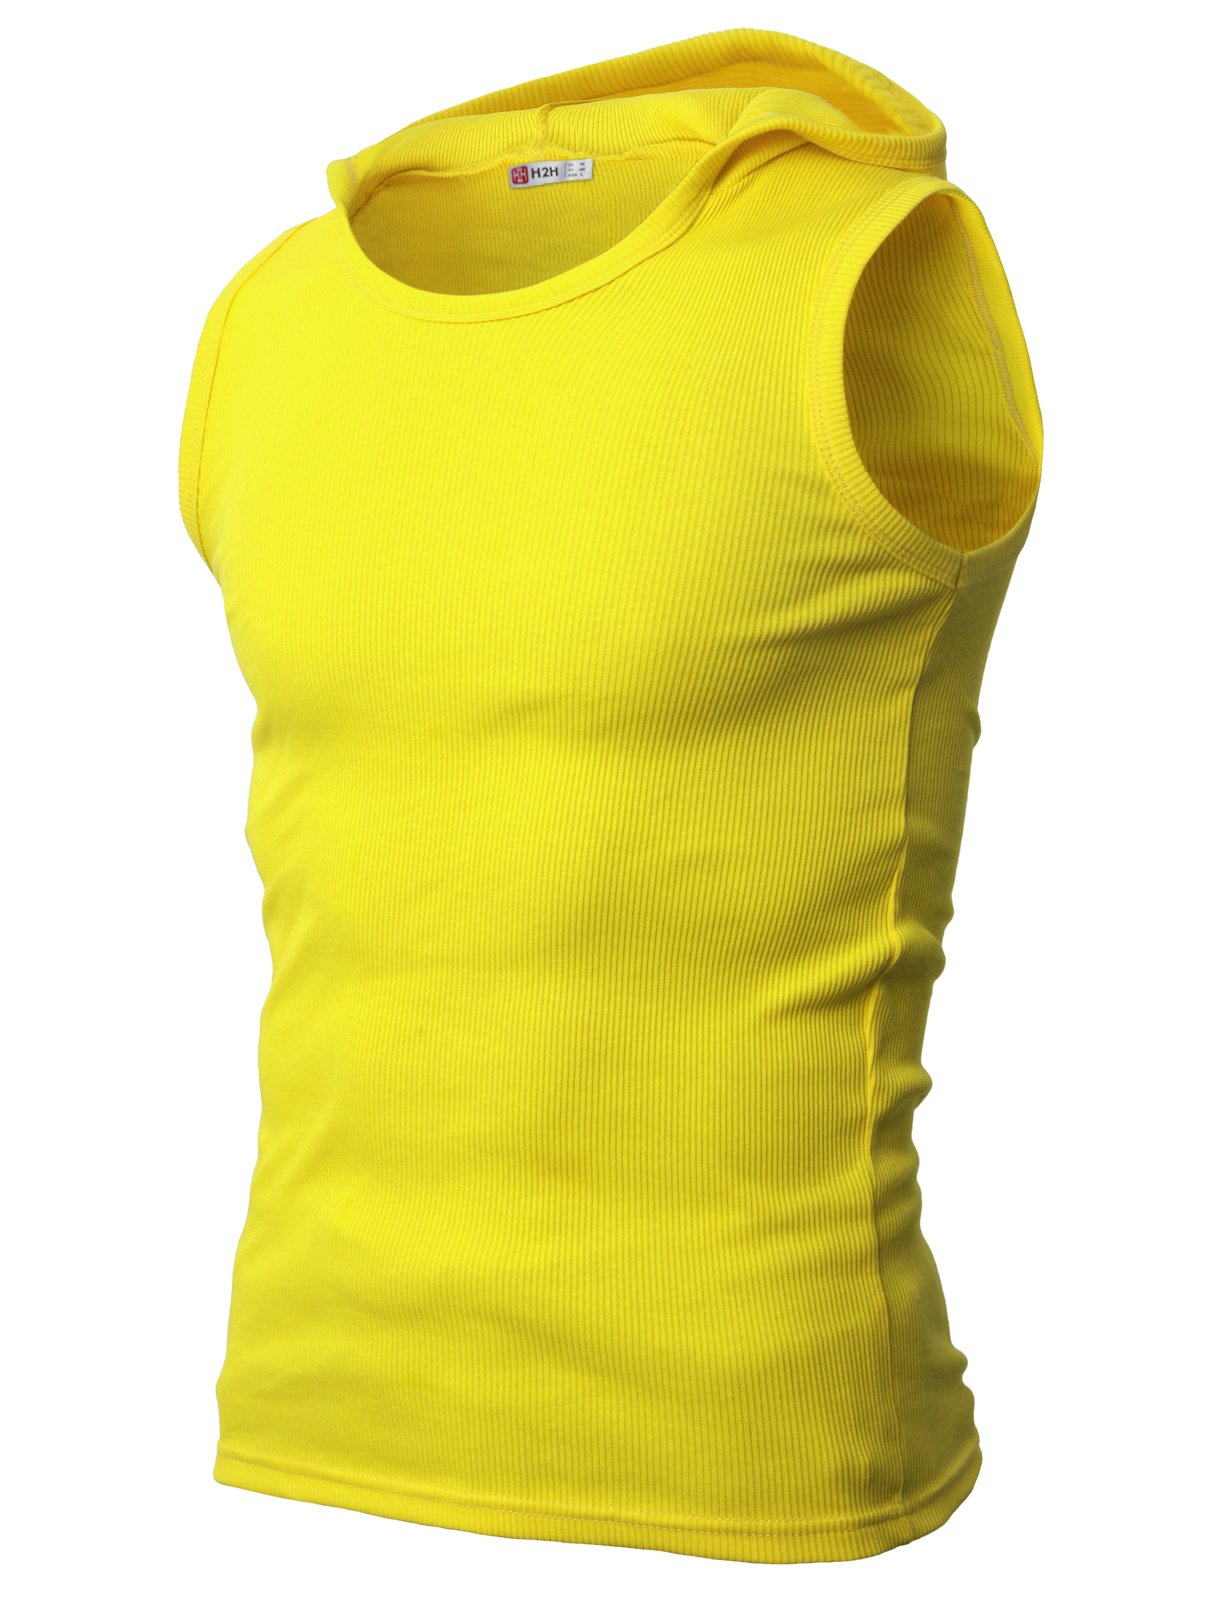 H2H Mens Active Wear Hooded Sleeveless T-Shirts Yellow US S/Asia M (JPSK05)